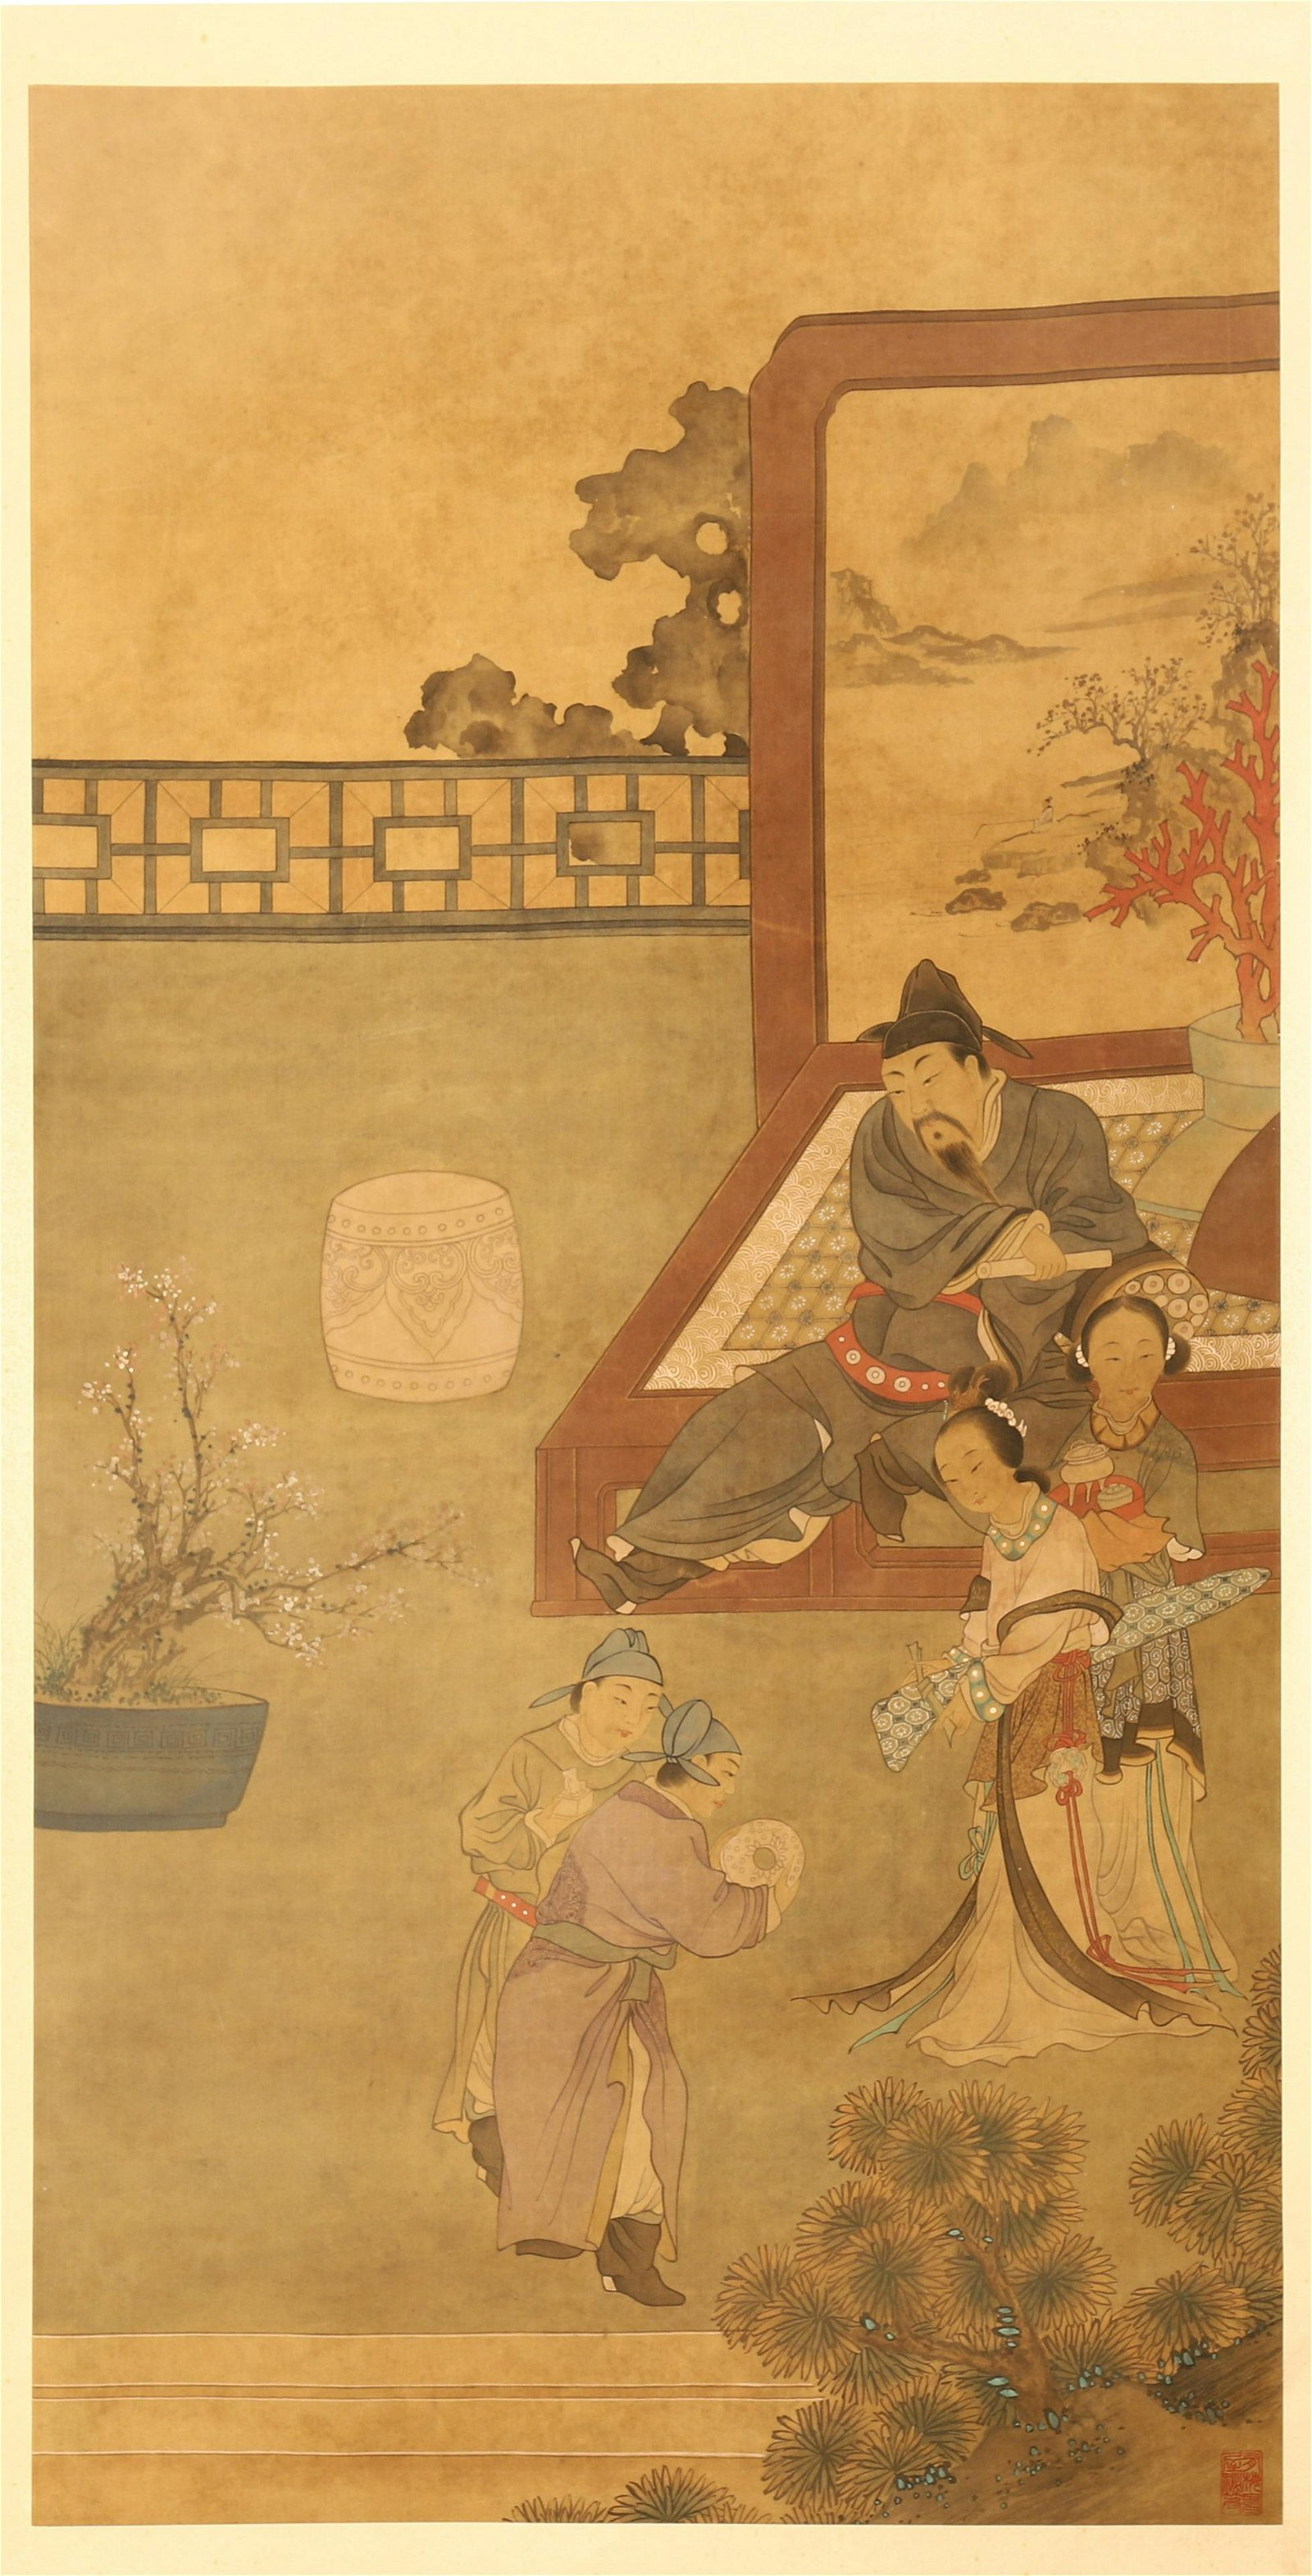 CHINESE SCROLL PAINTING OF MEN IN GARDEN